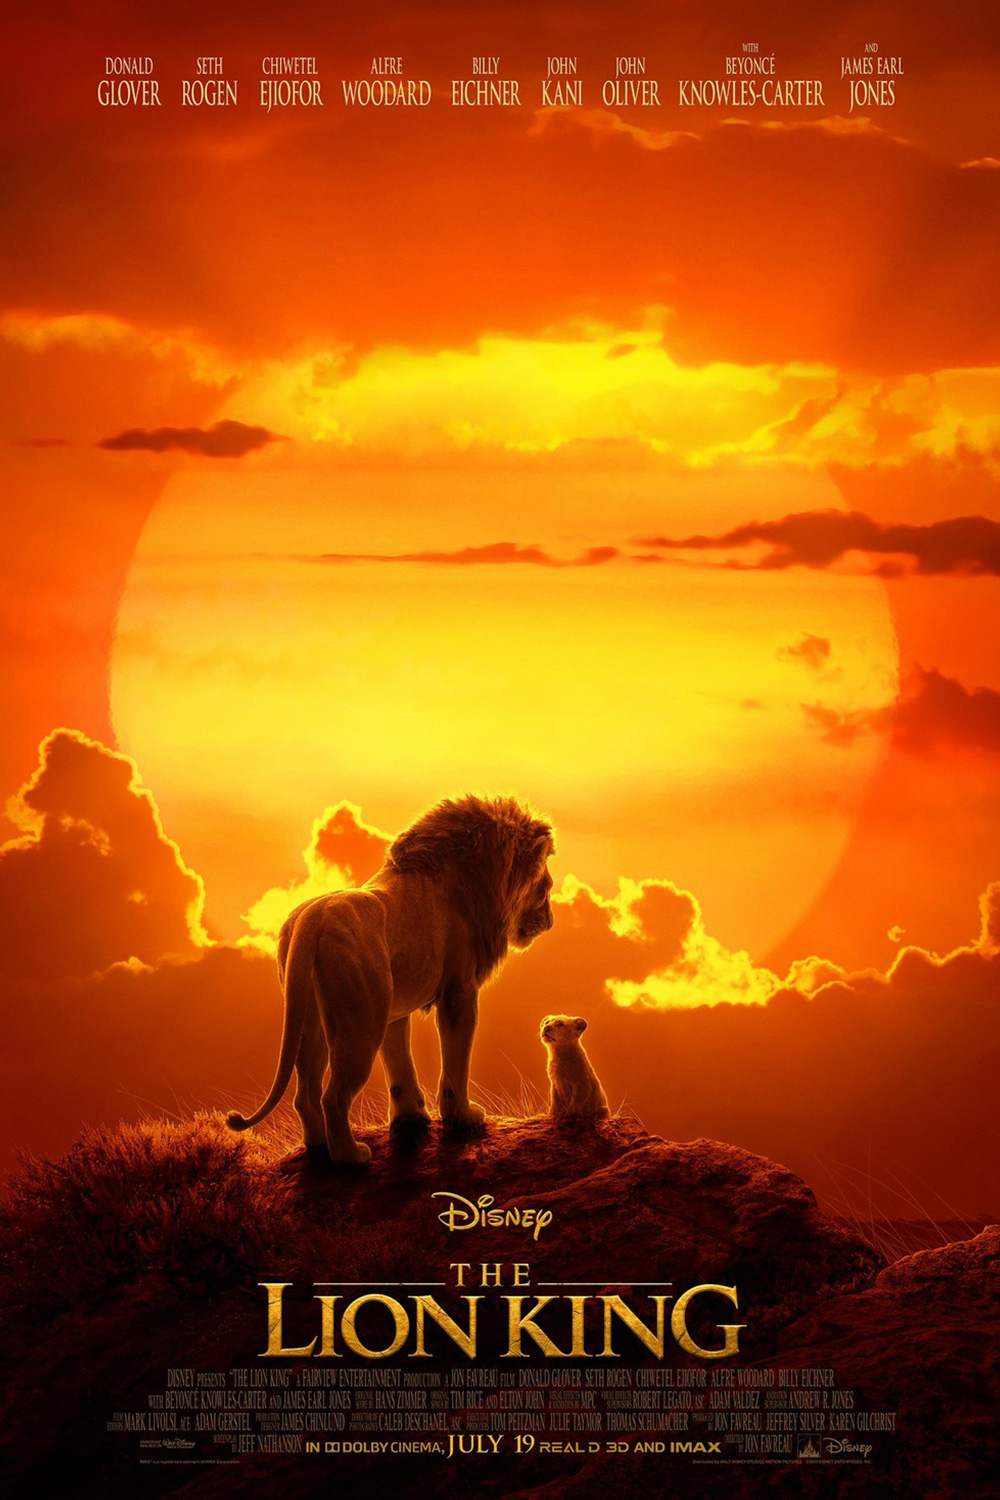 The Lion King movie shown at Marcus Theatres Columbus Ohio